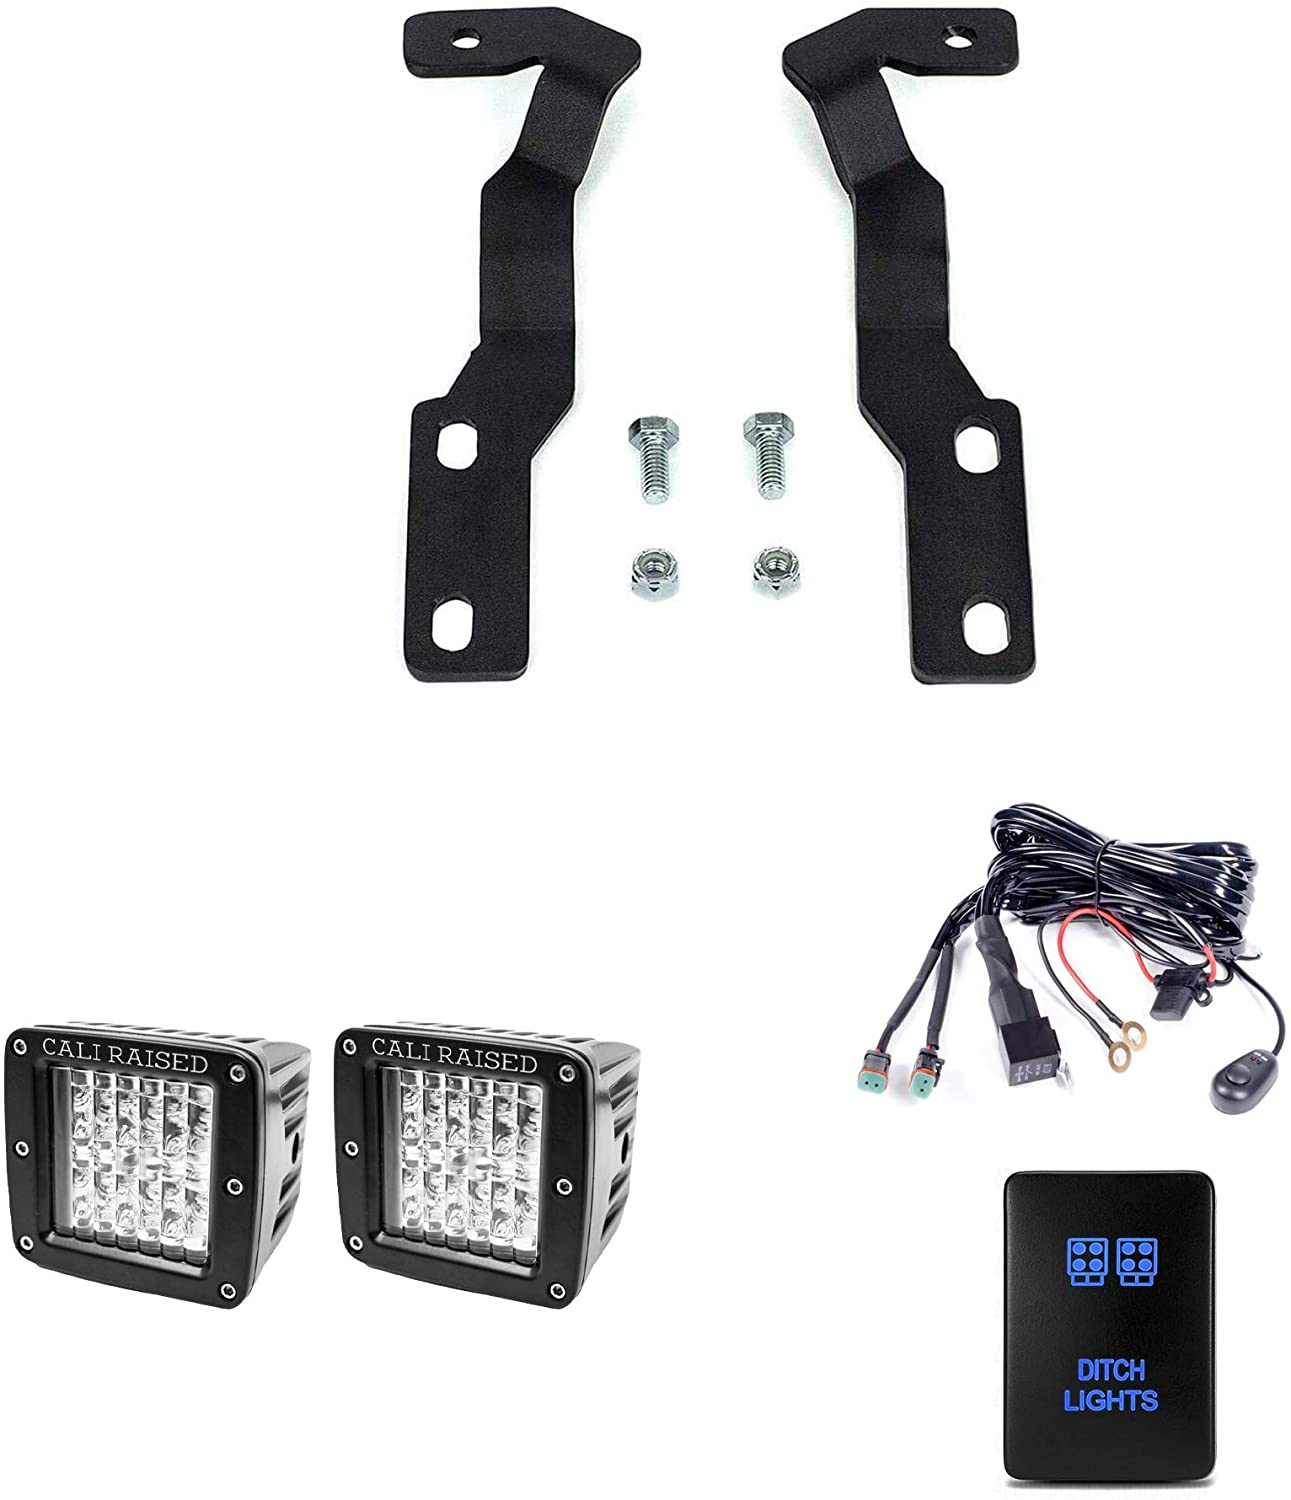 """Hood Mount Low Profile Ditch Light LED Pods Brackets  3x2 18W LED Pods  OEM Style Small """"Ditch Lights"""" Switch (Blue Backlight)  With Dual Wiring Harness  Fits 2016-2020 Toyota Tacoma"""